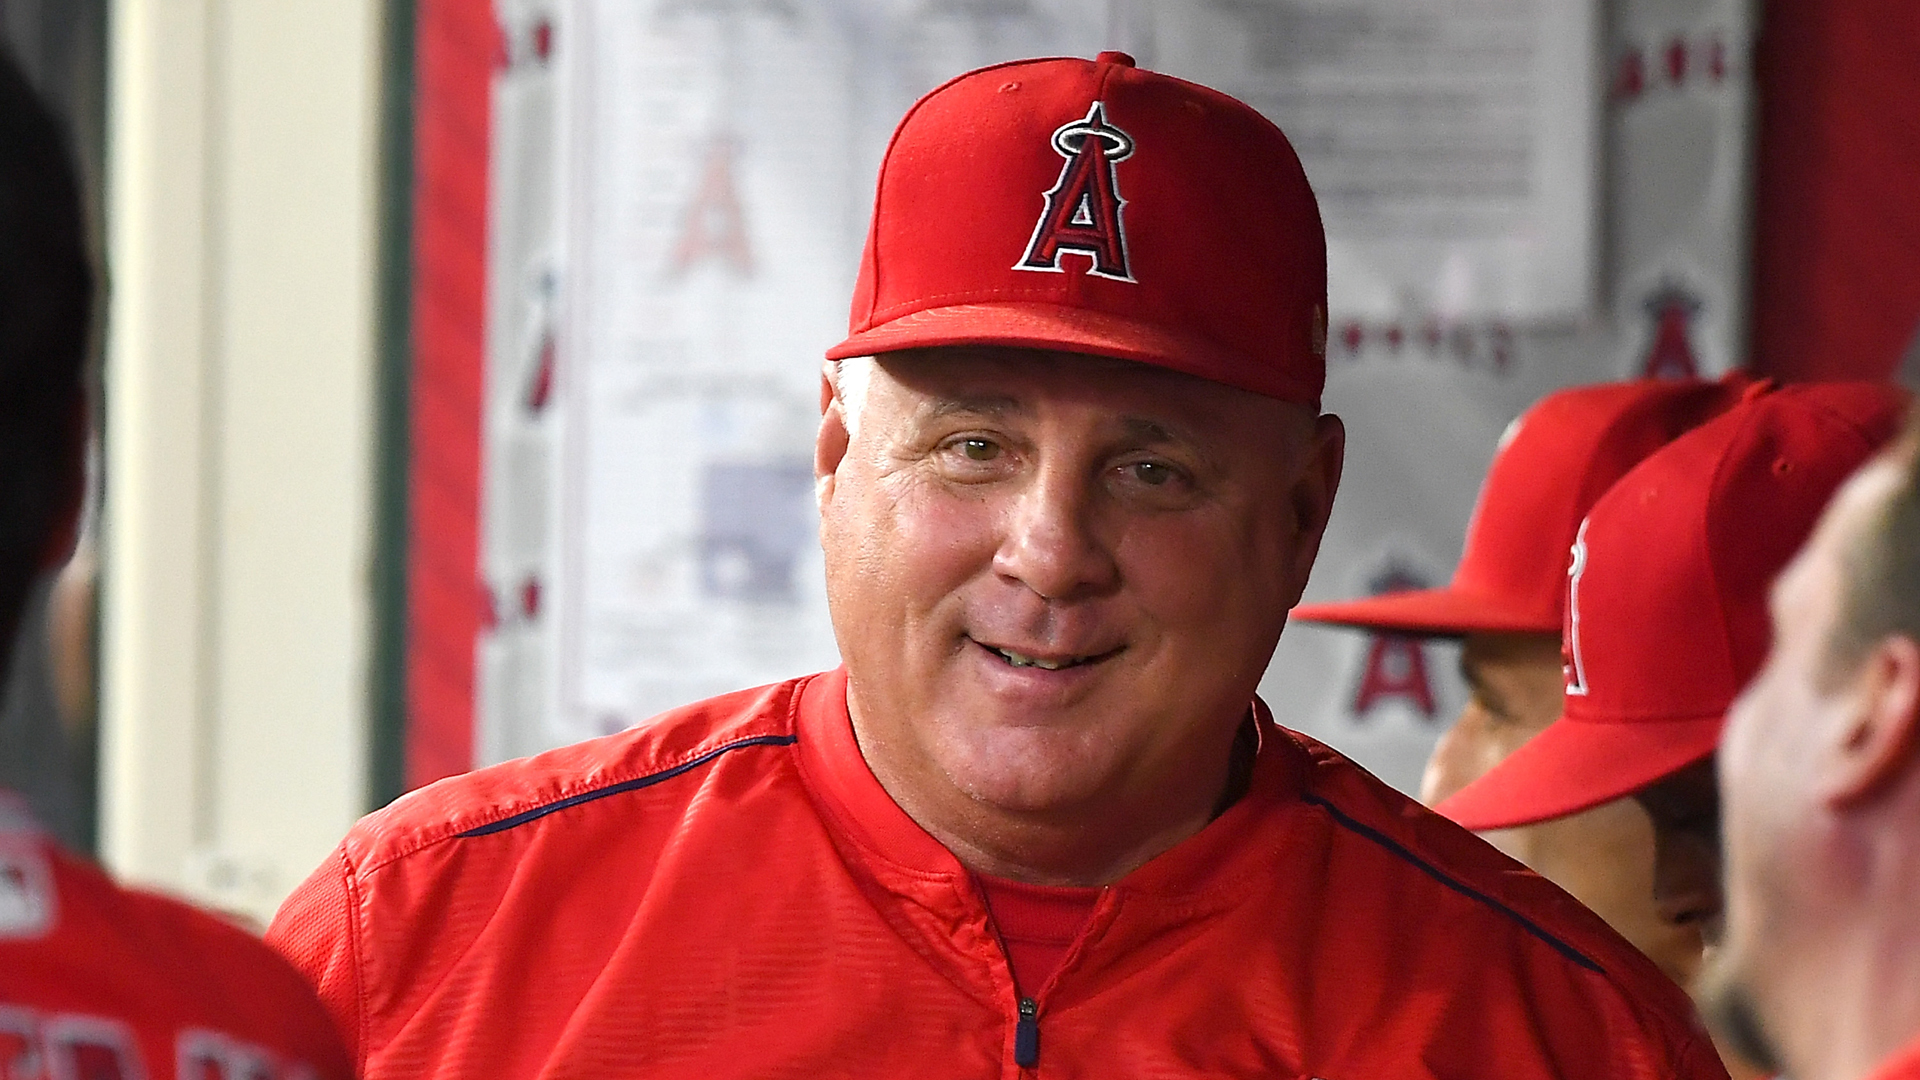 Manager Mike Scioscia of the Los Angeles Angels of Anaheim in the dugout during the game against the Seattle Mariners at Angel Stadium on September 13, 2018 in Anaheim. (Credit: Jayne Kamin-Oncea/Getty Images)